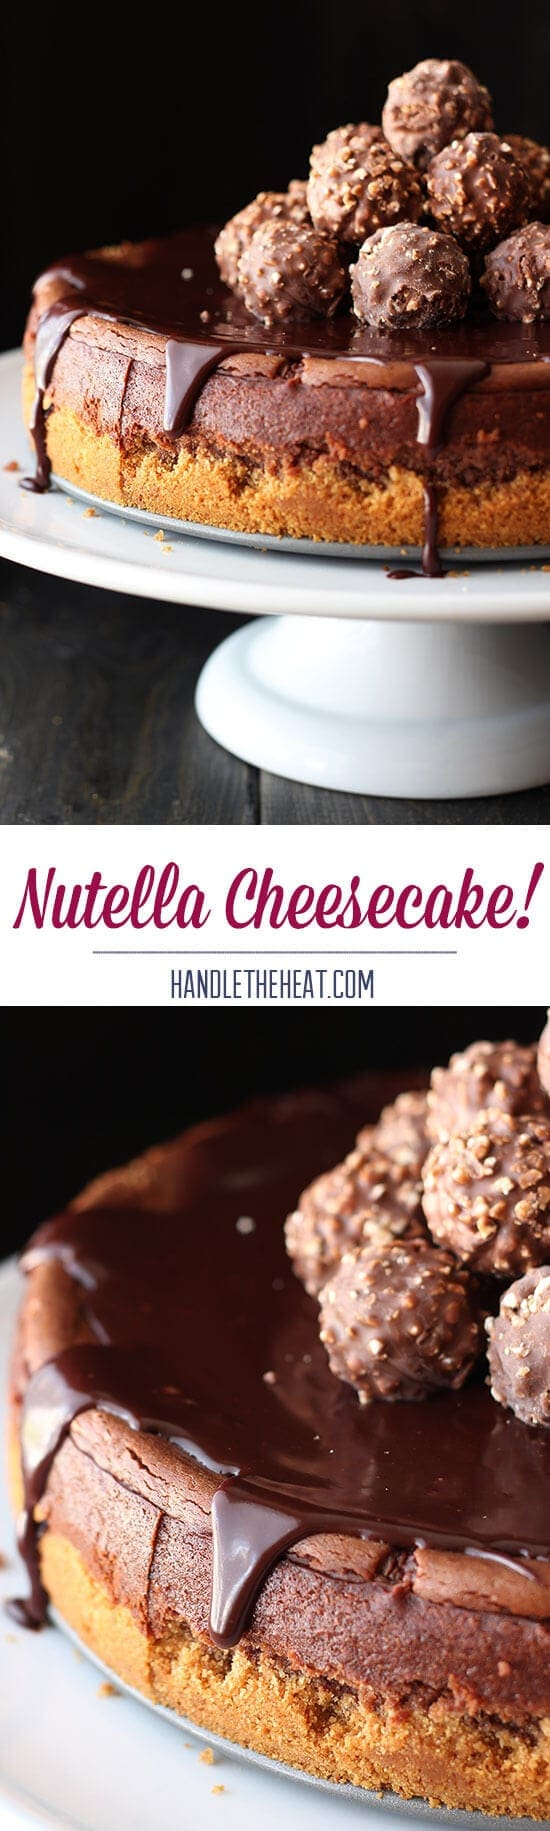 This. is. DIVINE!! SO easy to make and tastes OUTSANDING. A+ recipe for Nutella Cheesecake.